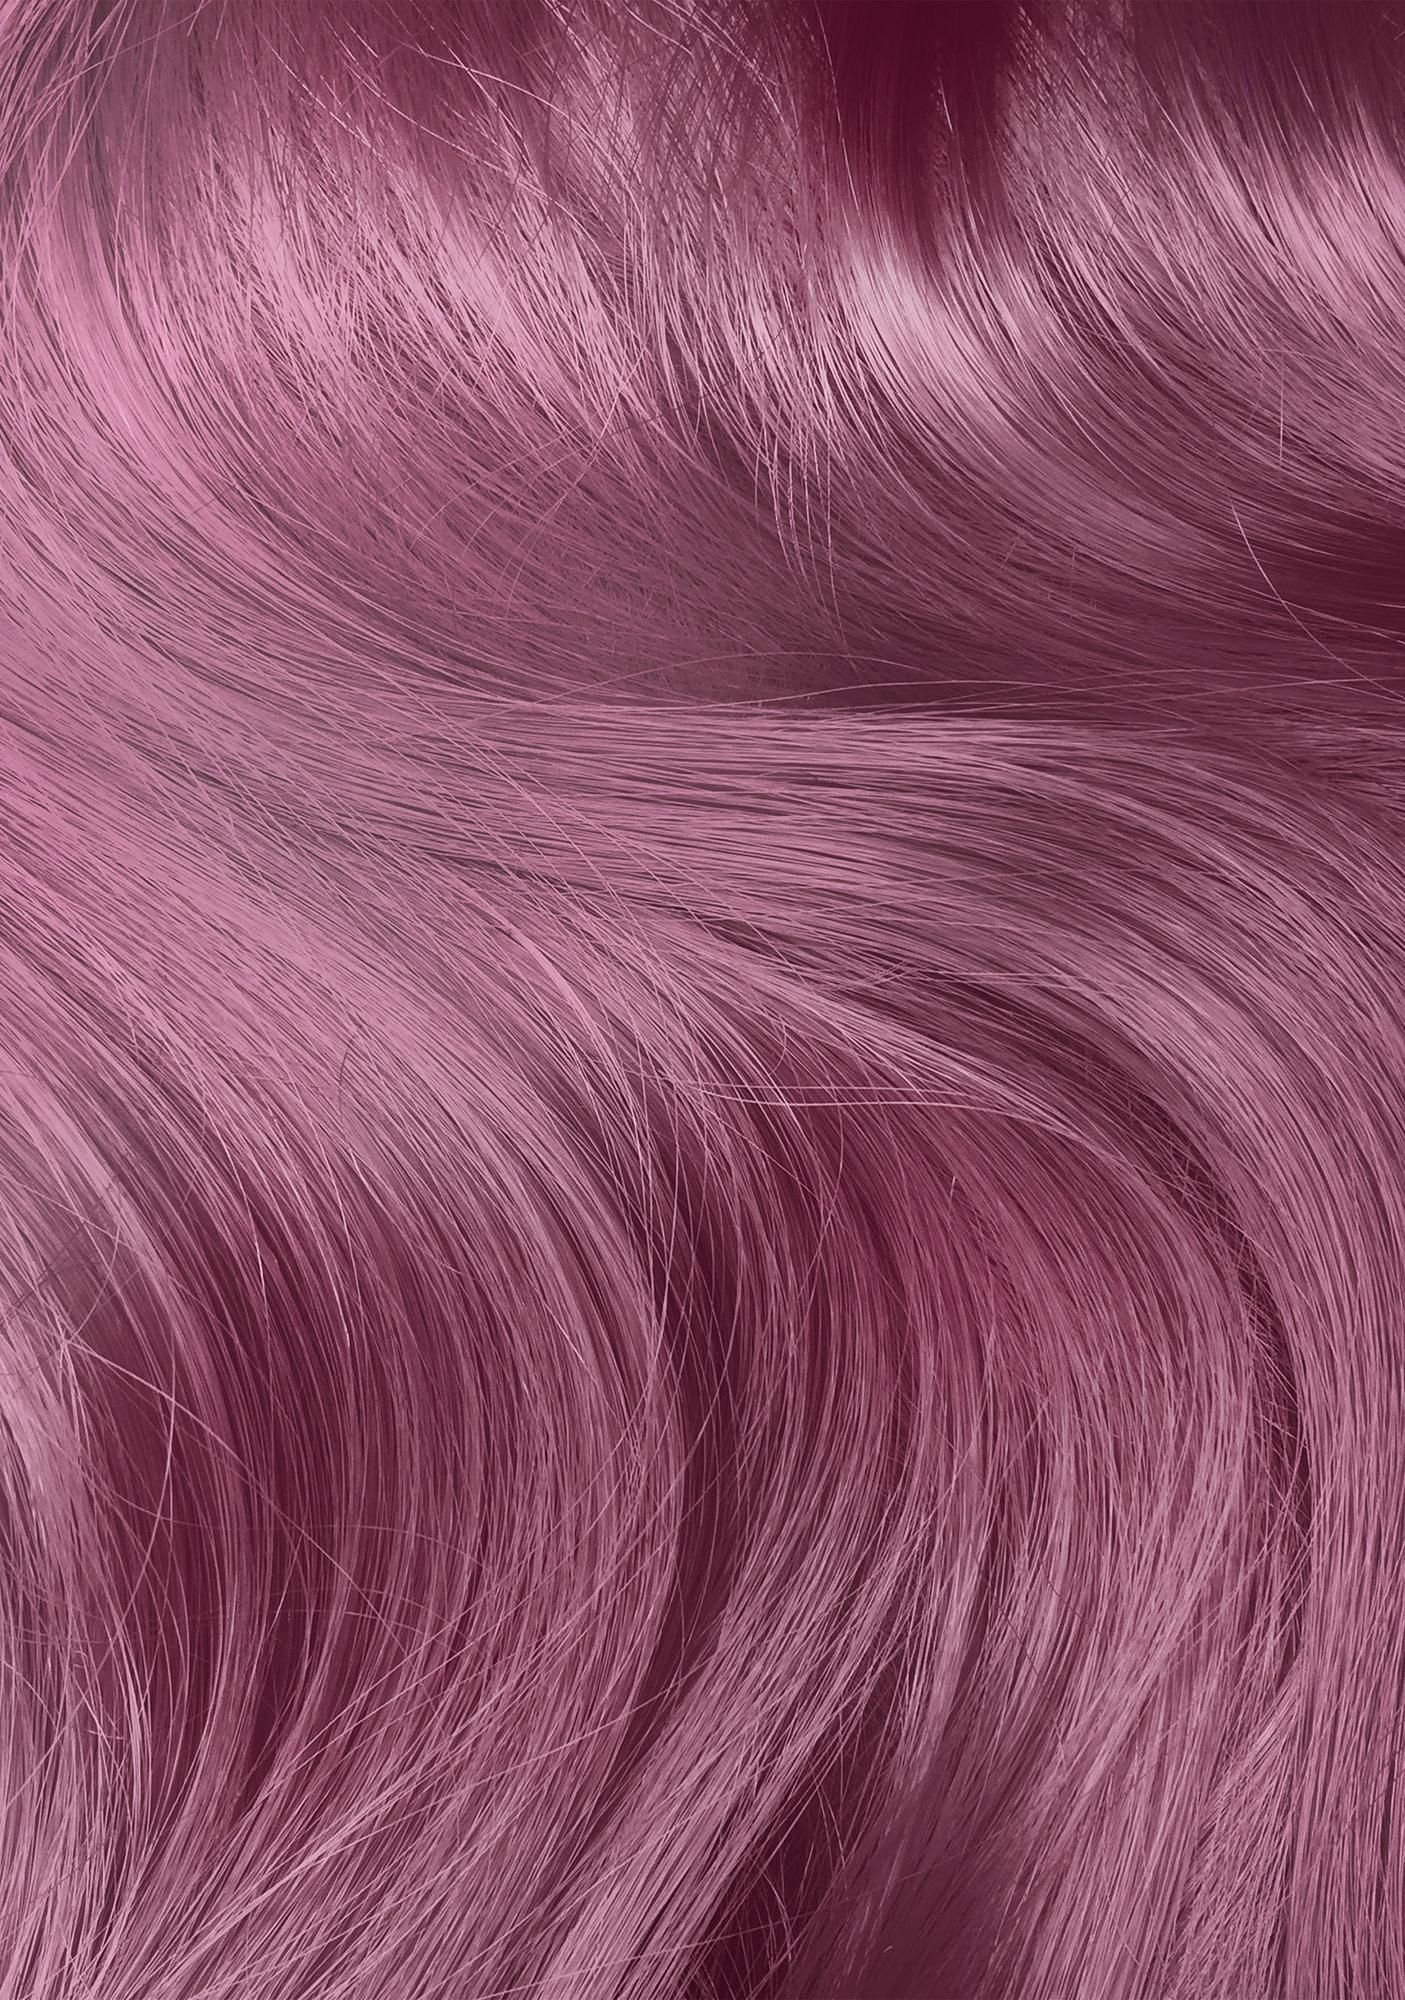 Lime Crime Sext Unicorn Hair Dye All Colors Of Hair Pinterest